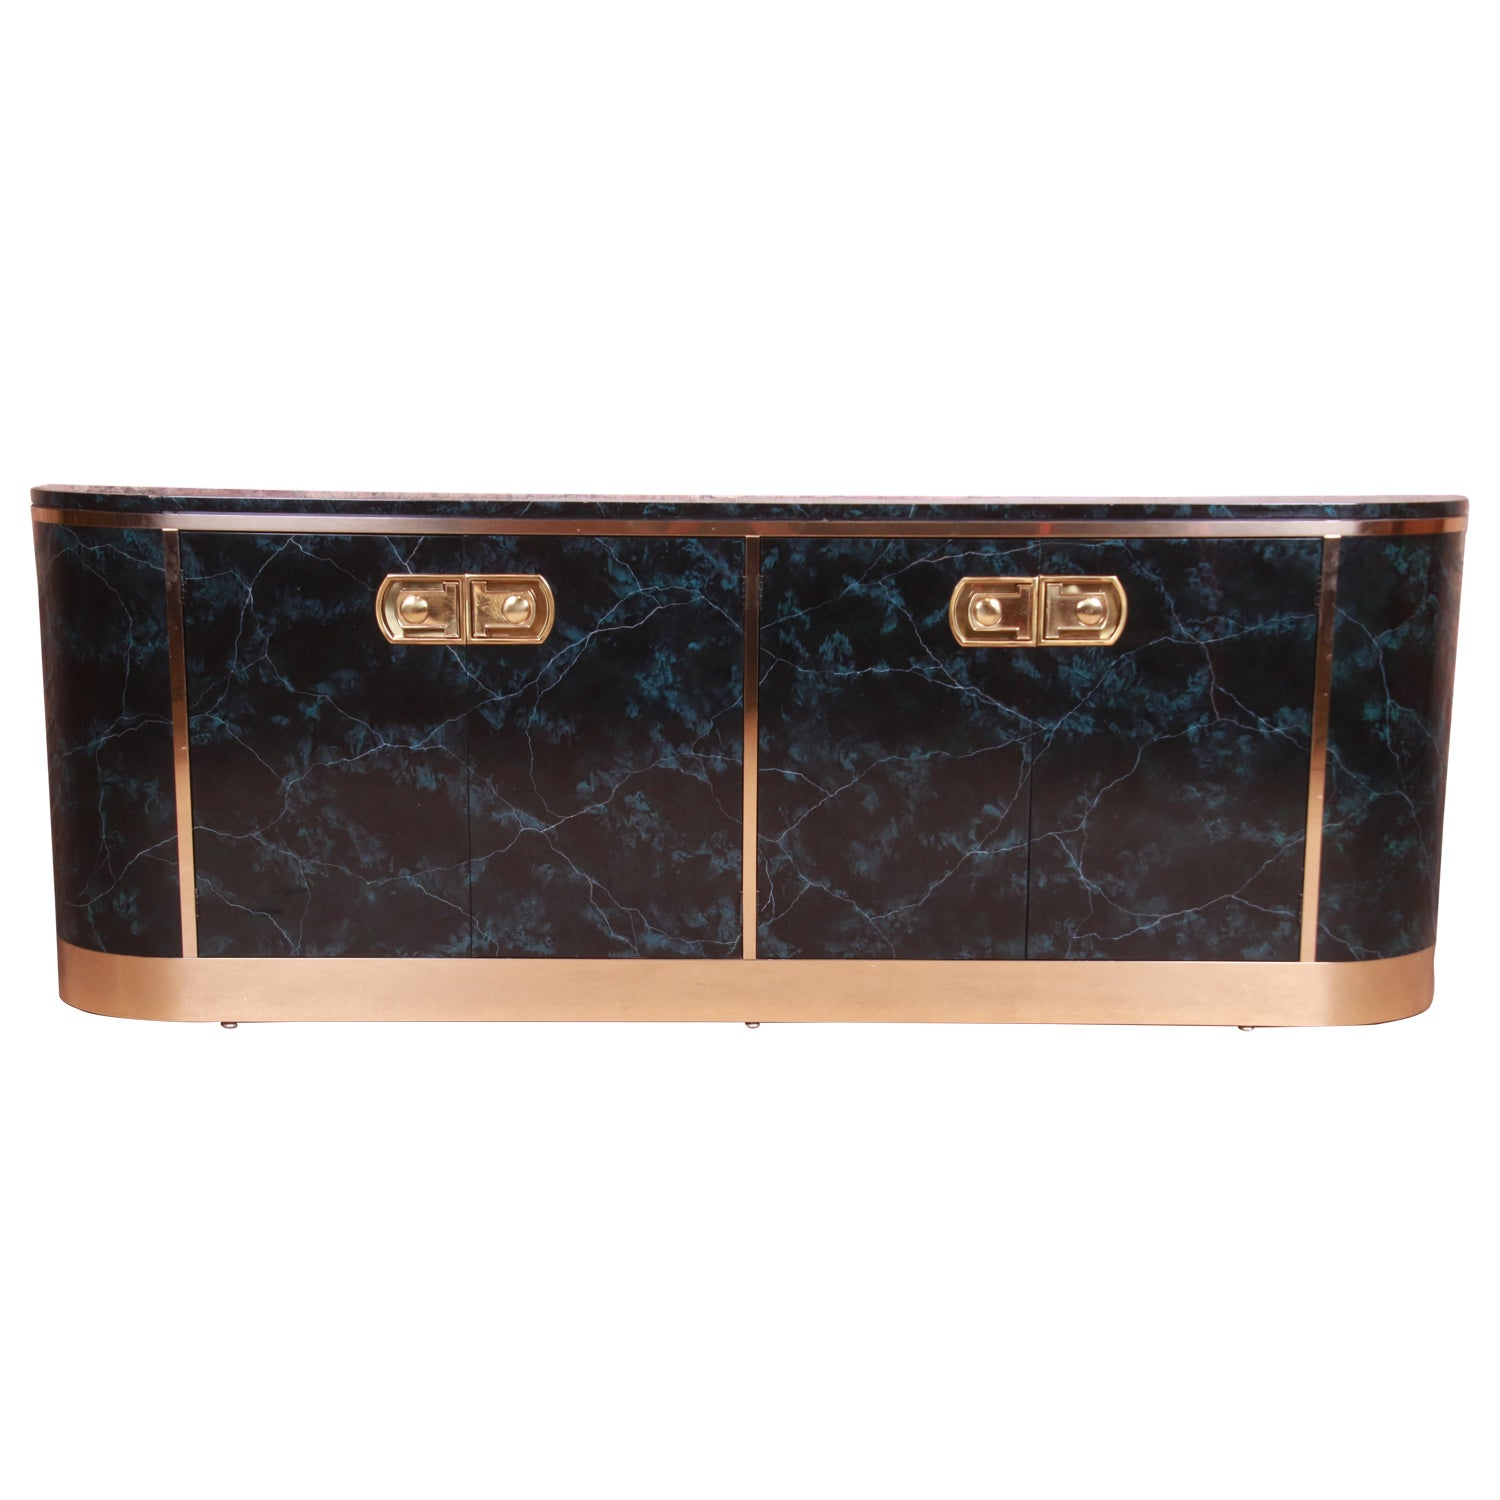 Mastercraft Hollywood Regency Faux Marble and Brass Sideboard Credenza